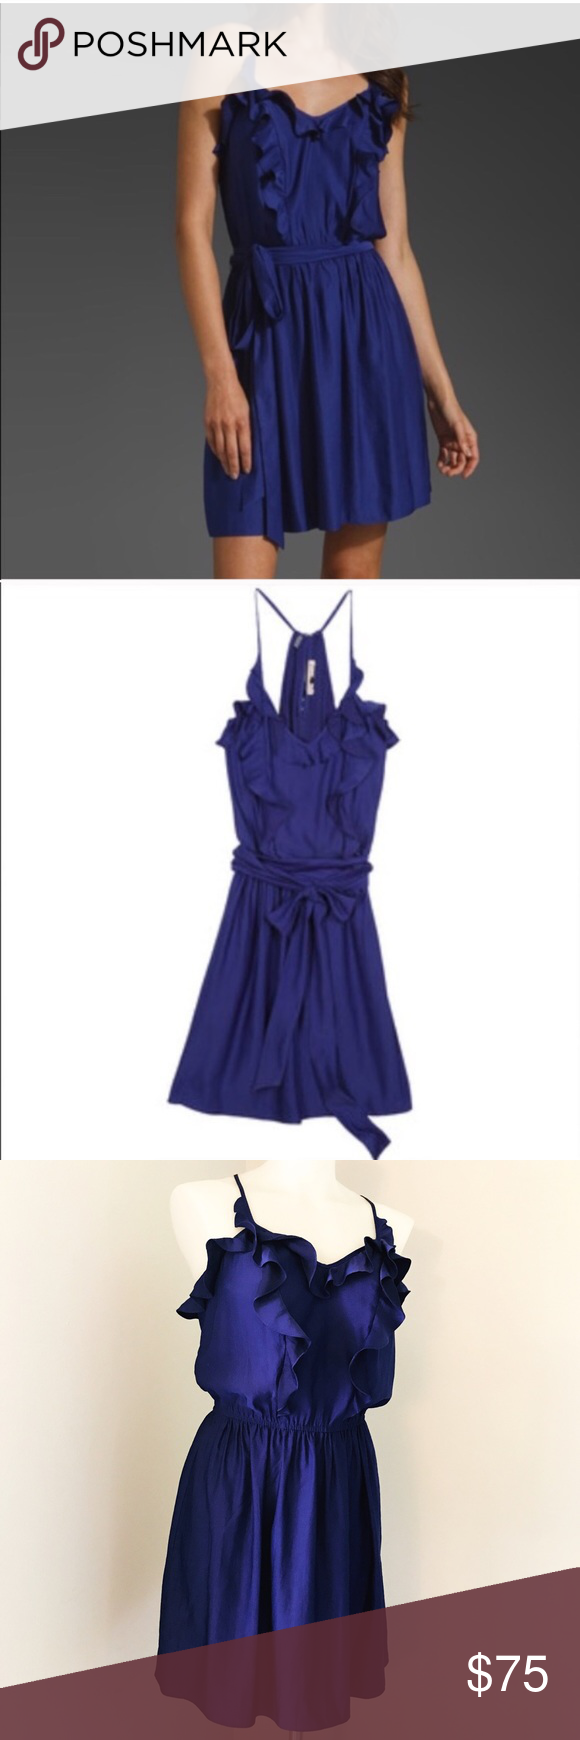 "Rebecca Taylor Indigo Ruffled V-Neck Sundress Excellent preowned condition, beautiful deep blue purple Sleeveless mini sundress with elastic waist.  Does not come with tie belt. Approximate measurements when laid flat: 13"" waist, 18"" bust, 36"" length. Rebecca Taylor Dresses Mini"